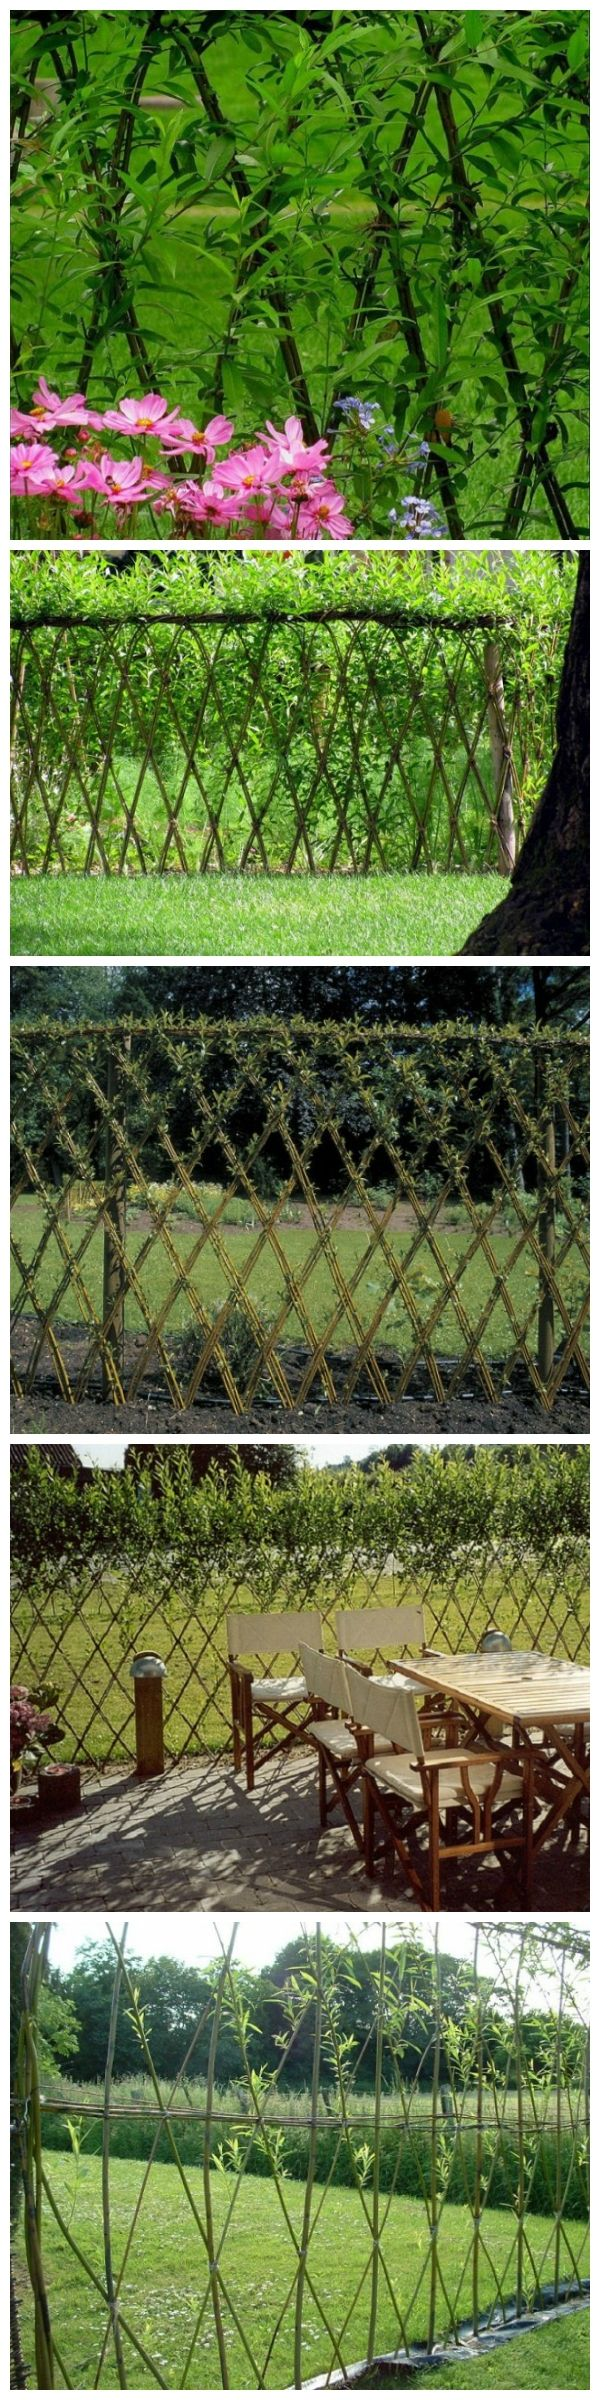 Amazing Examples Of Living Willow Fences | Outdoors ...